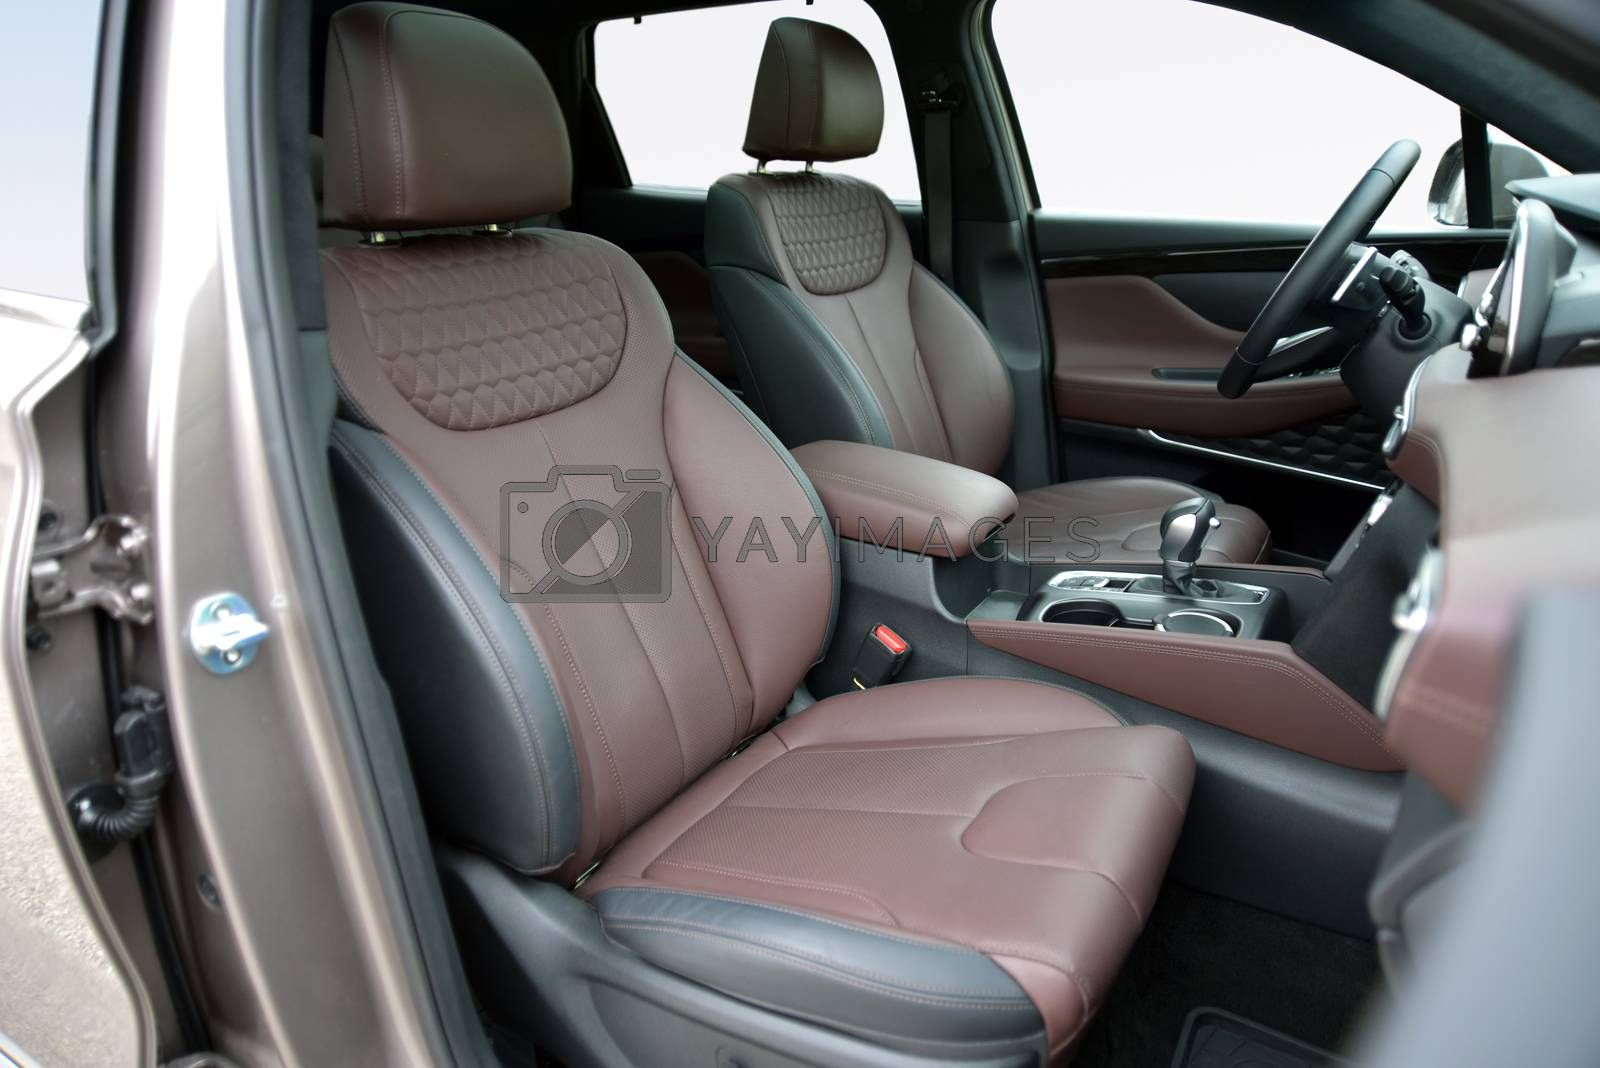 Royalty free image of Front seats of a modern SUV by aselsa